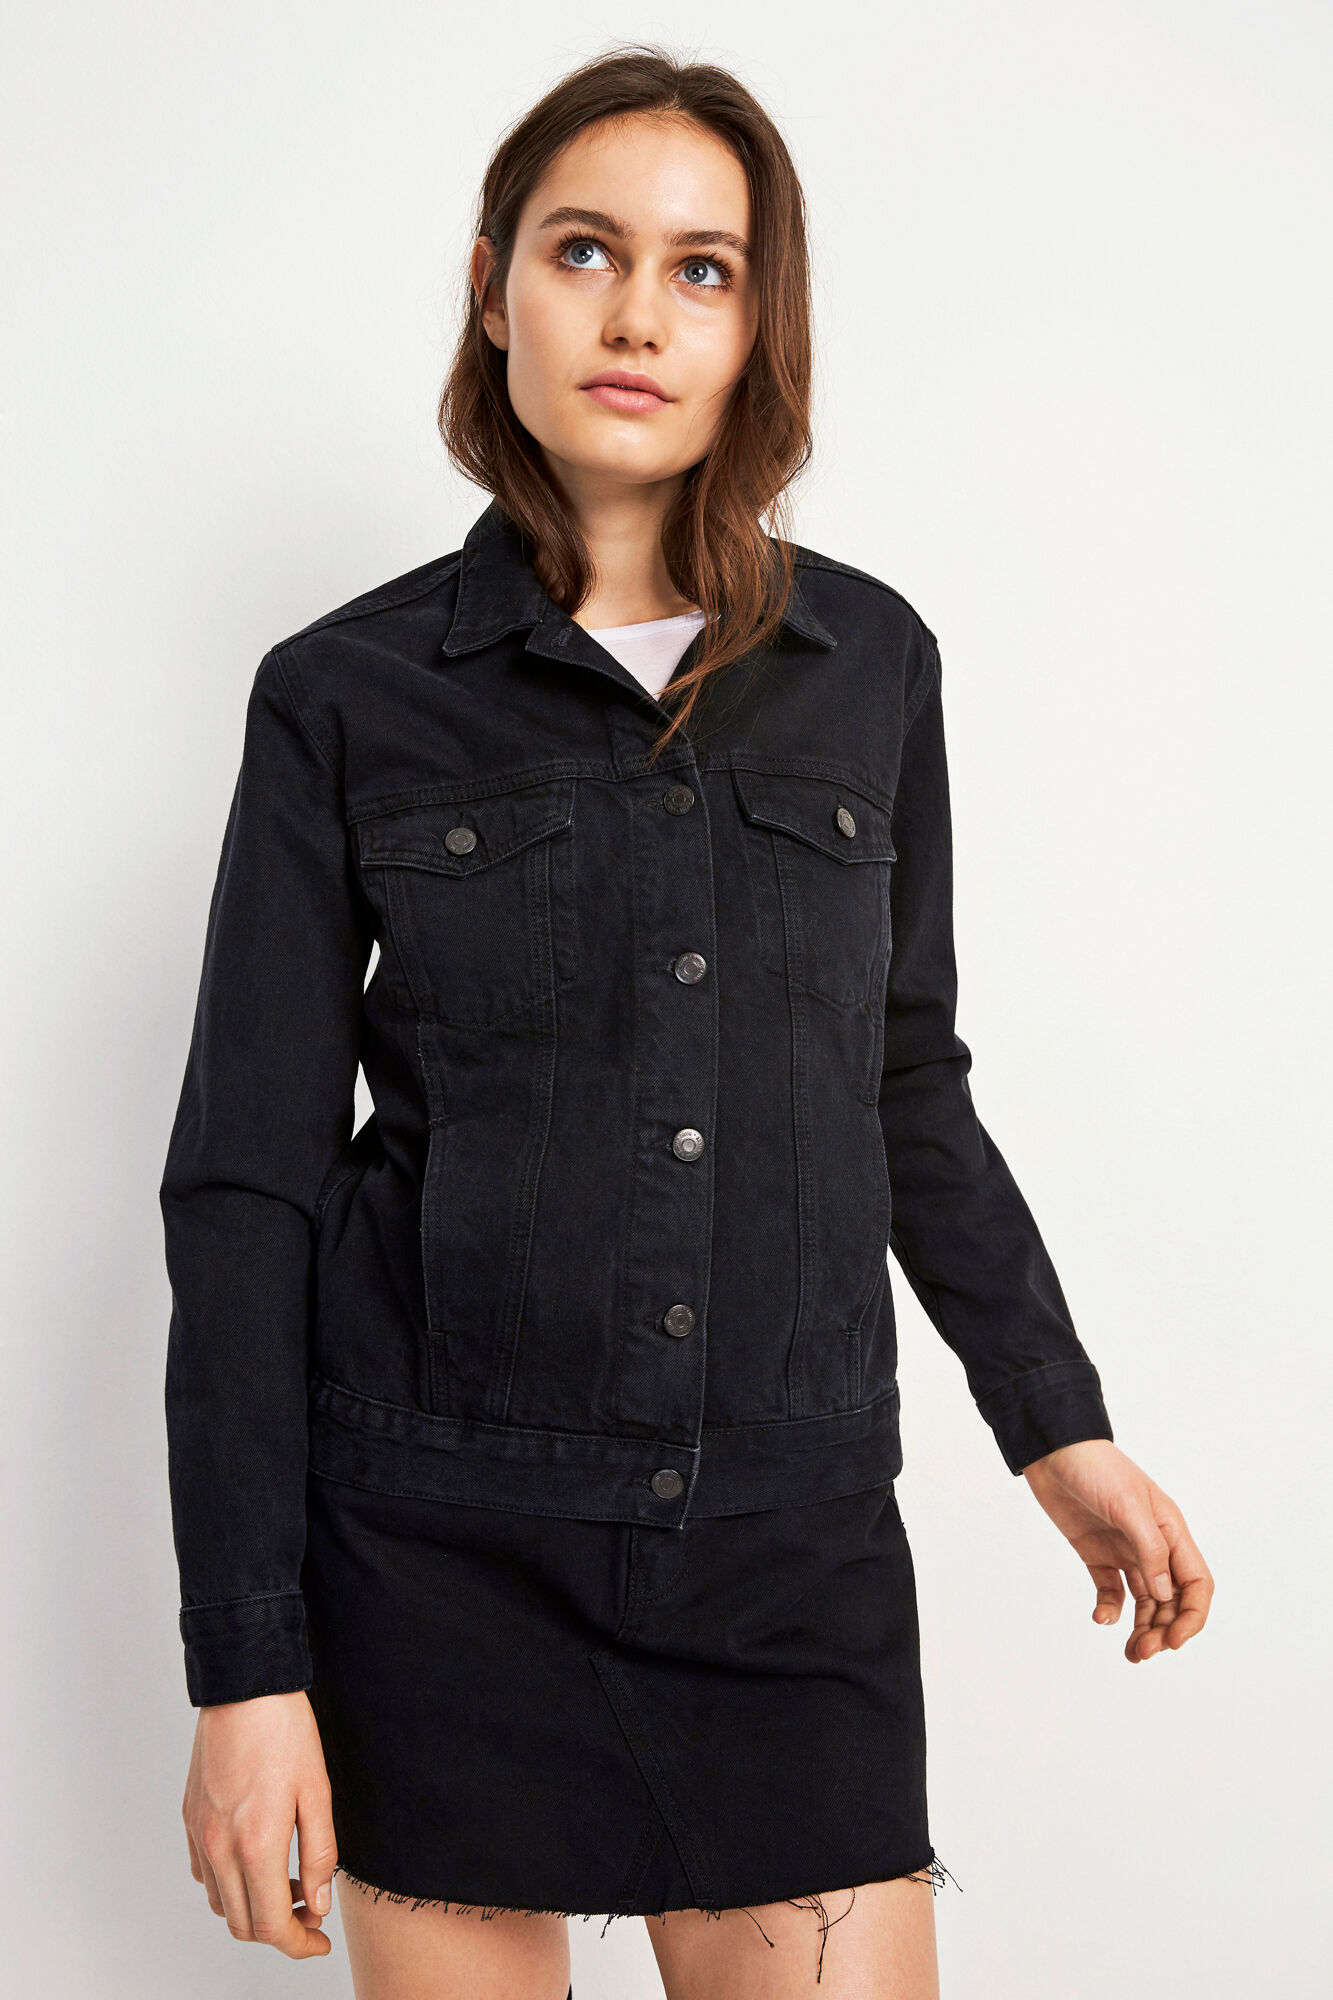 ENSETTLER DENIM JACKET 6447